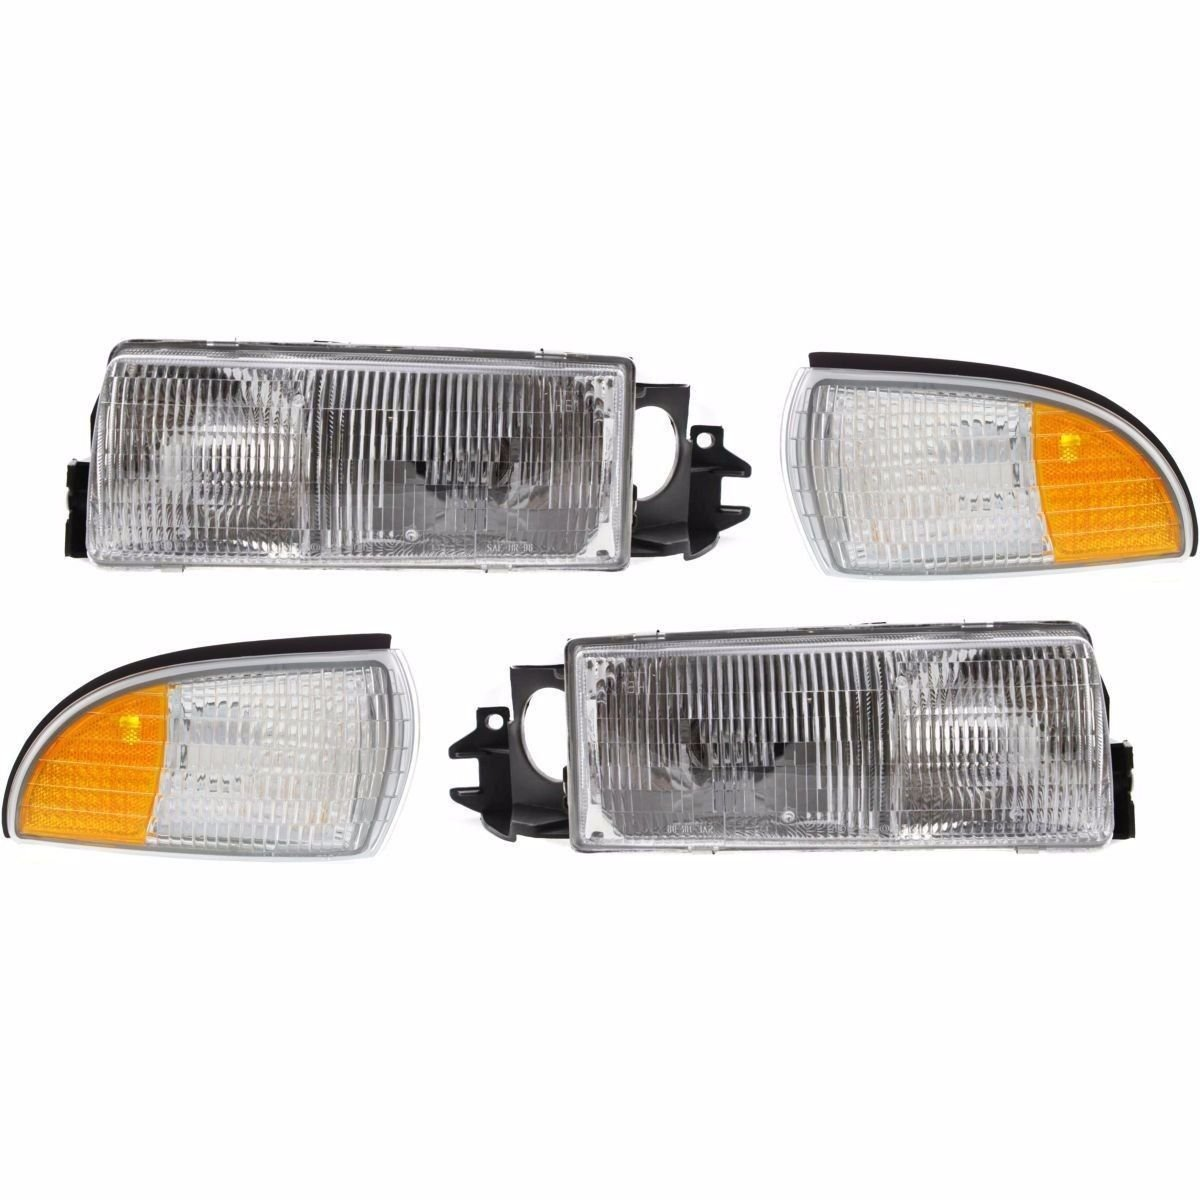 Georgie Boy Landau 1999-2005 RV Motorhome Pair (Left & Right) Replacement Front Headlights with Corner Lamps 4PC Set